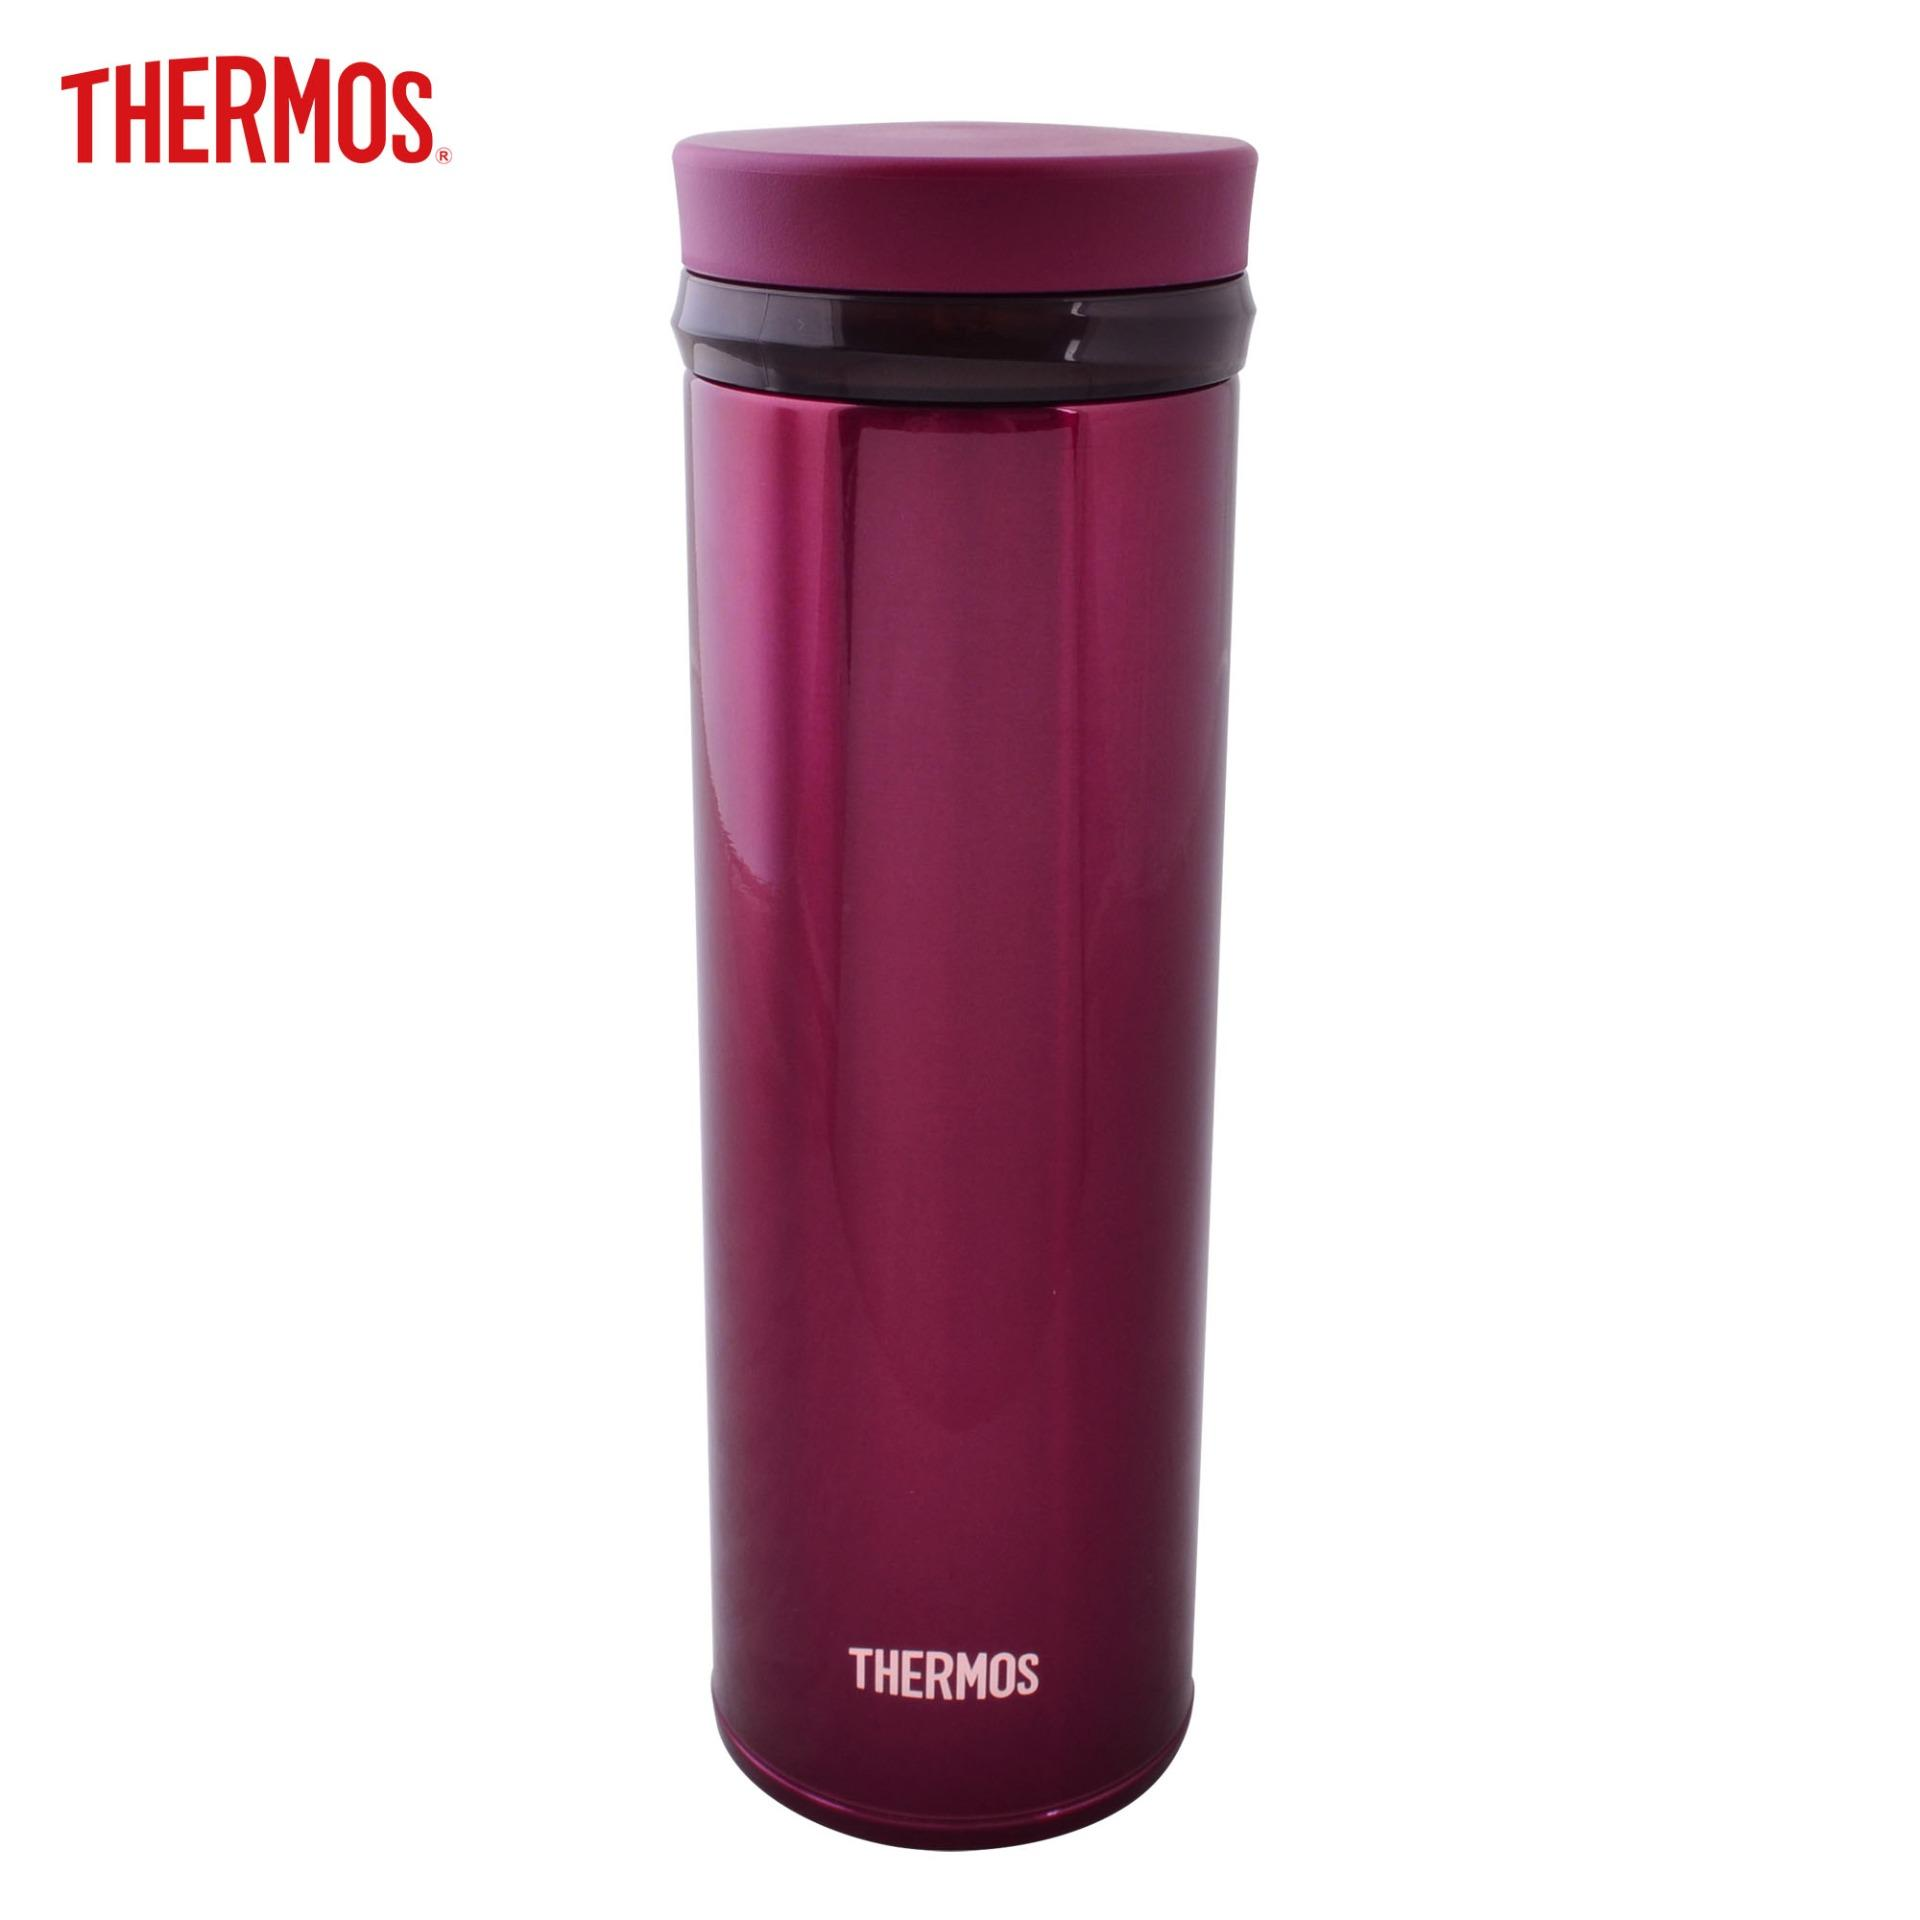 Thermos Stainless Vacuum Insulated Tumbler 500ml (Burgundy)